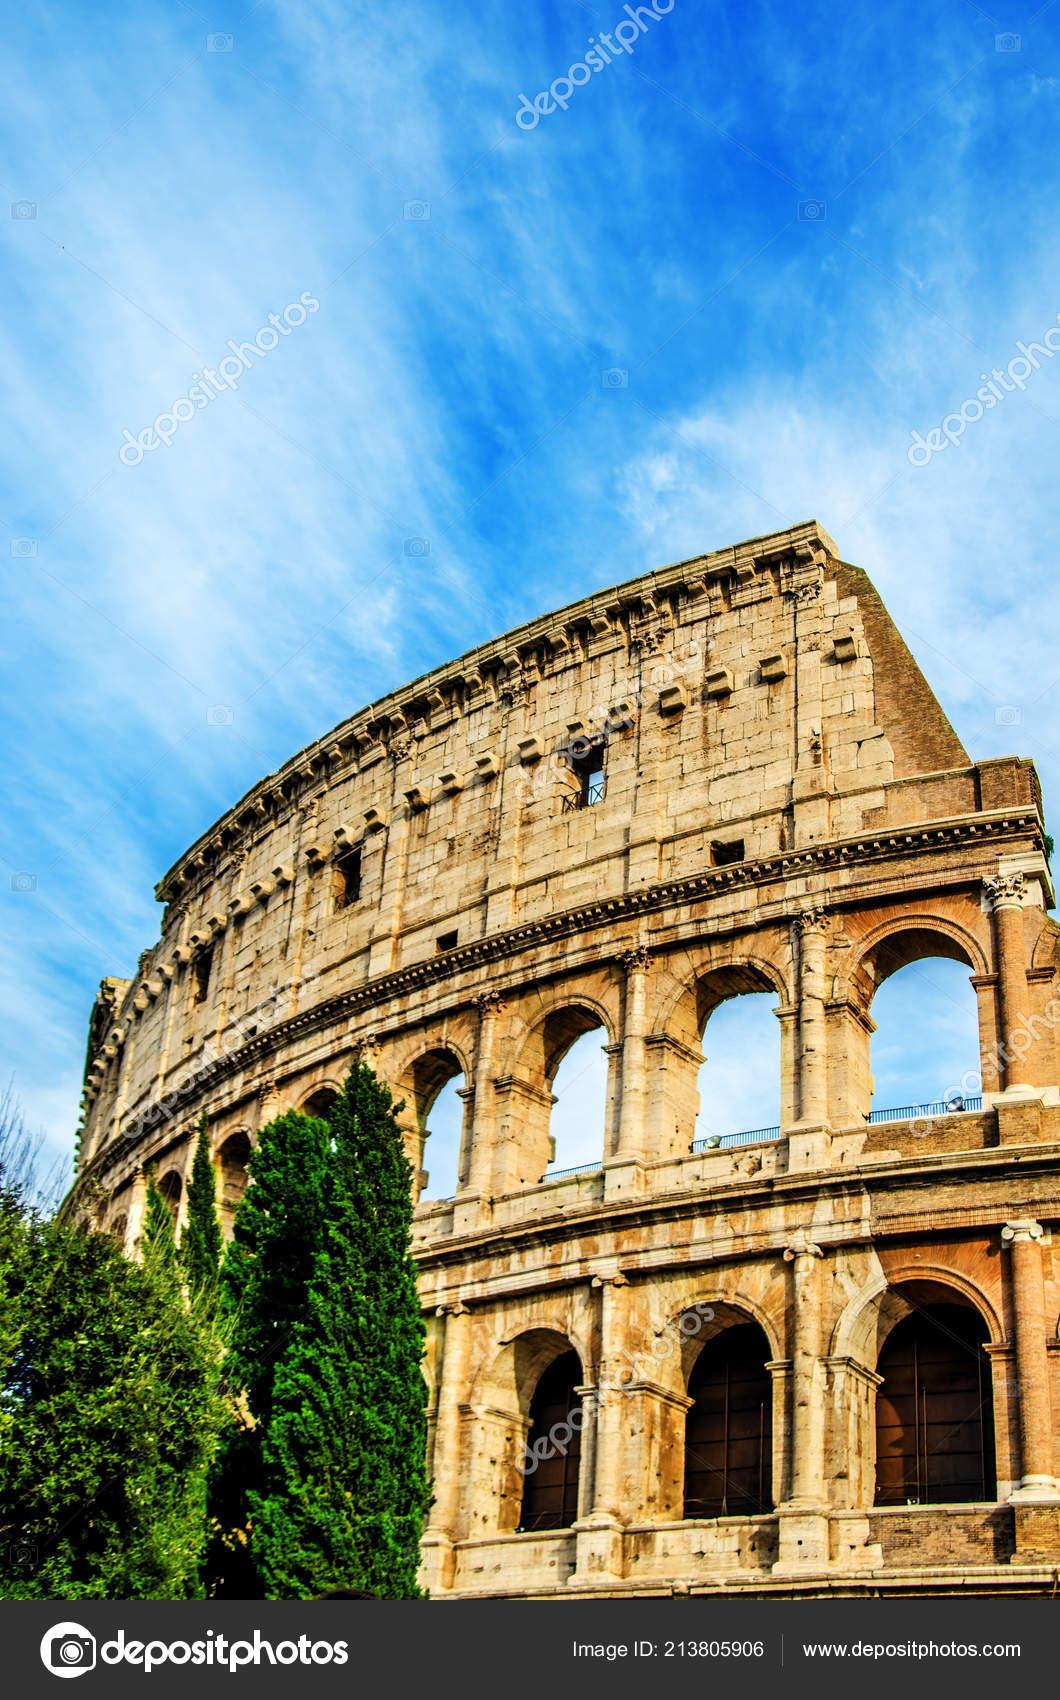 Ruins Colosseum Blue Sky White Traces Floating Clouds Rome